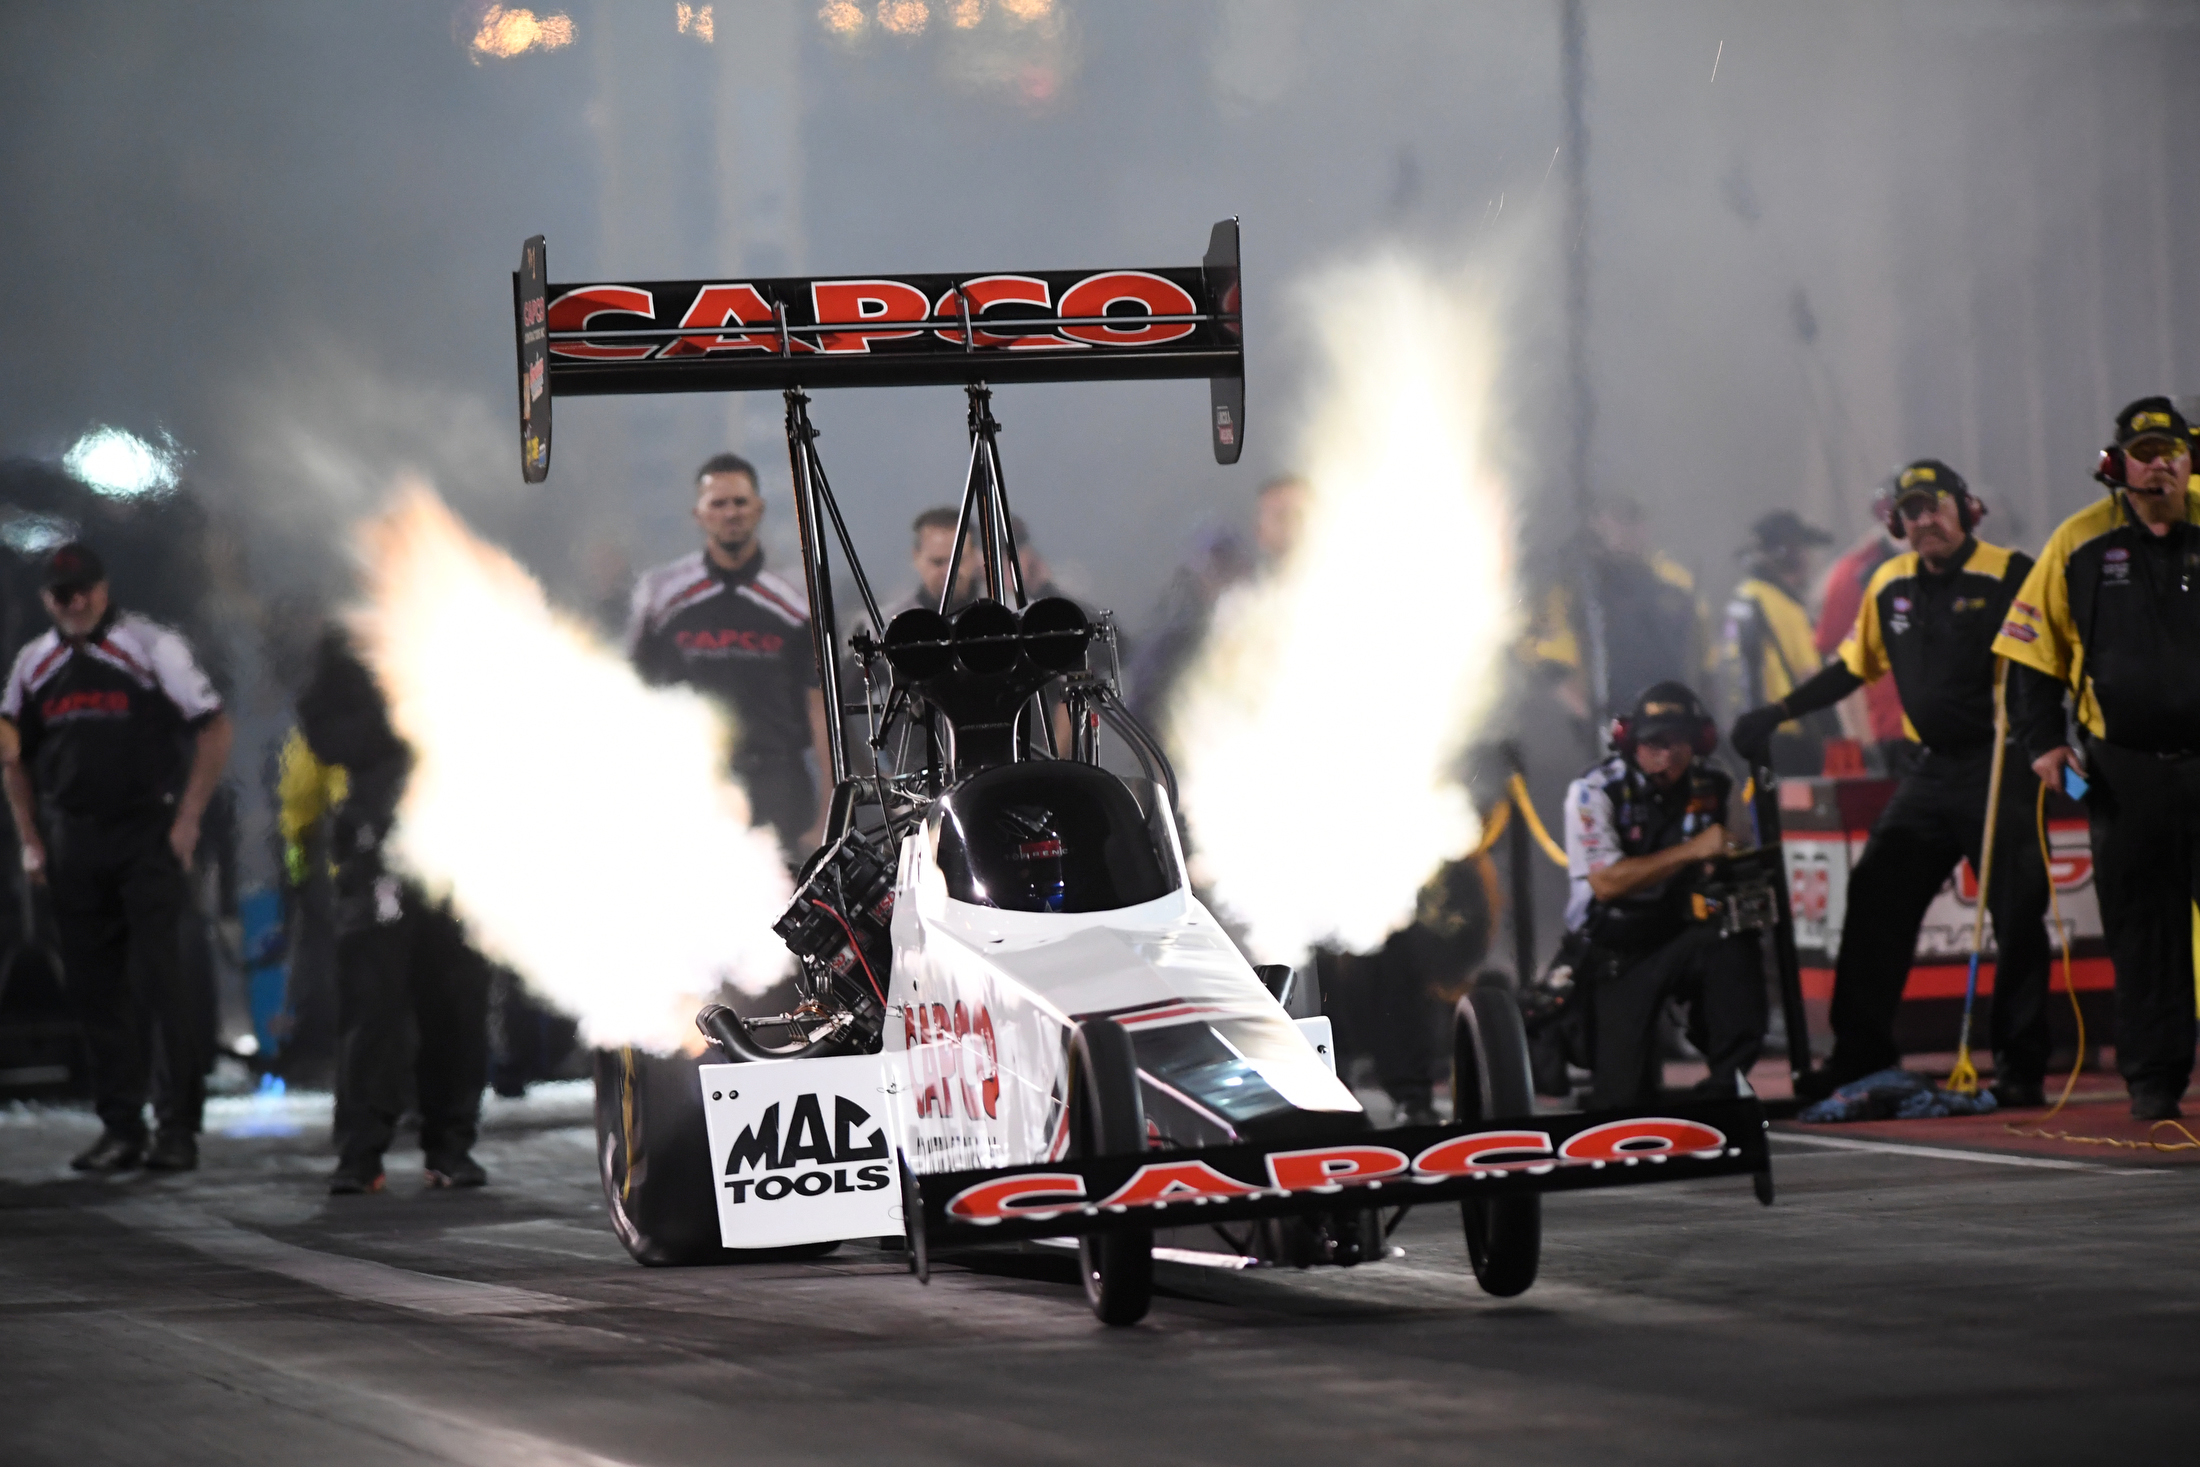 Top Fuel Dragster pilot Steve Torrence racing on Saturday at the Dodge Mile-High NHRA Nationals